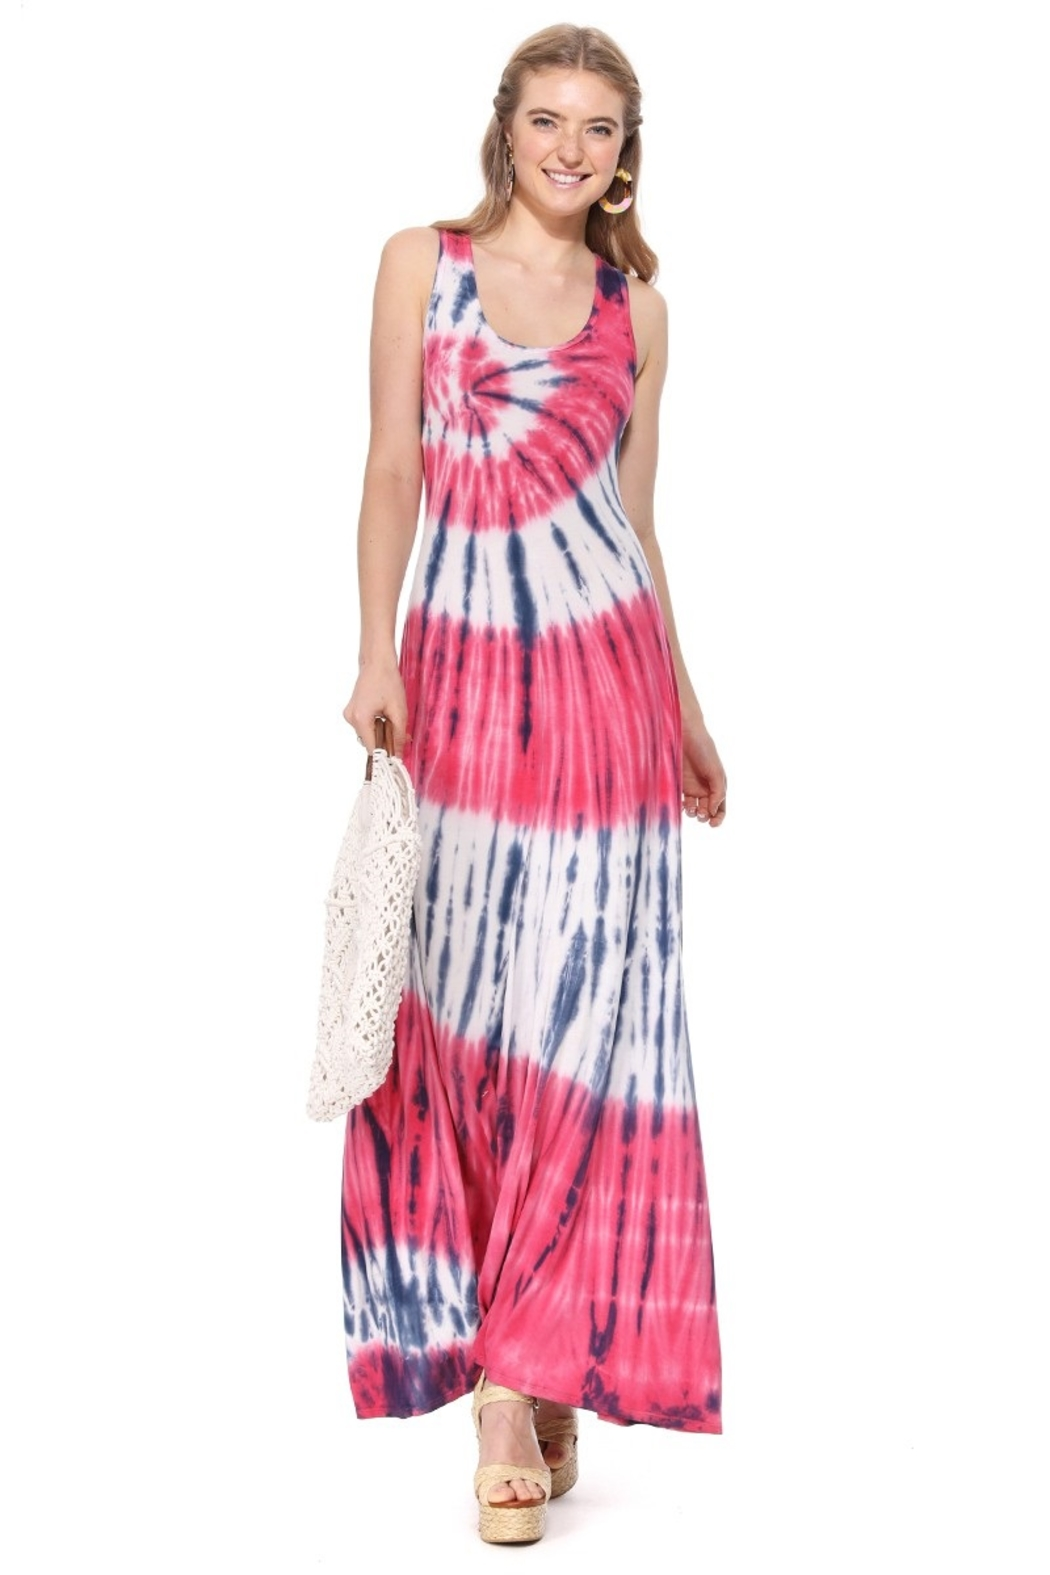 T-Party  Bree Knit Tank Maxi Dress - Main Image